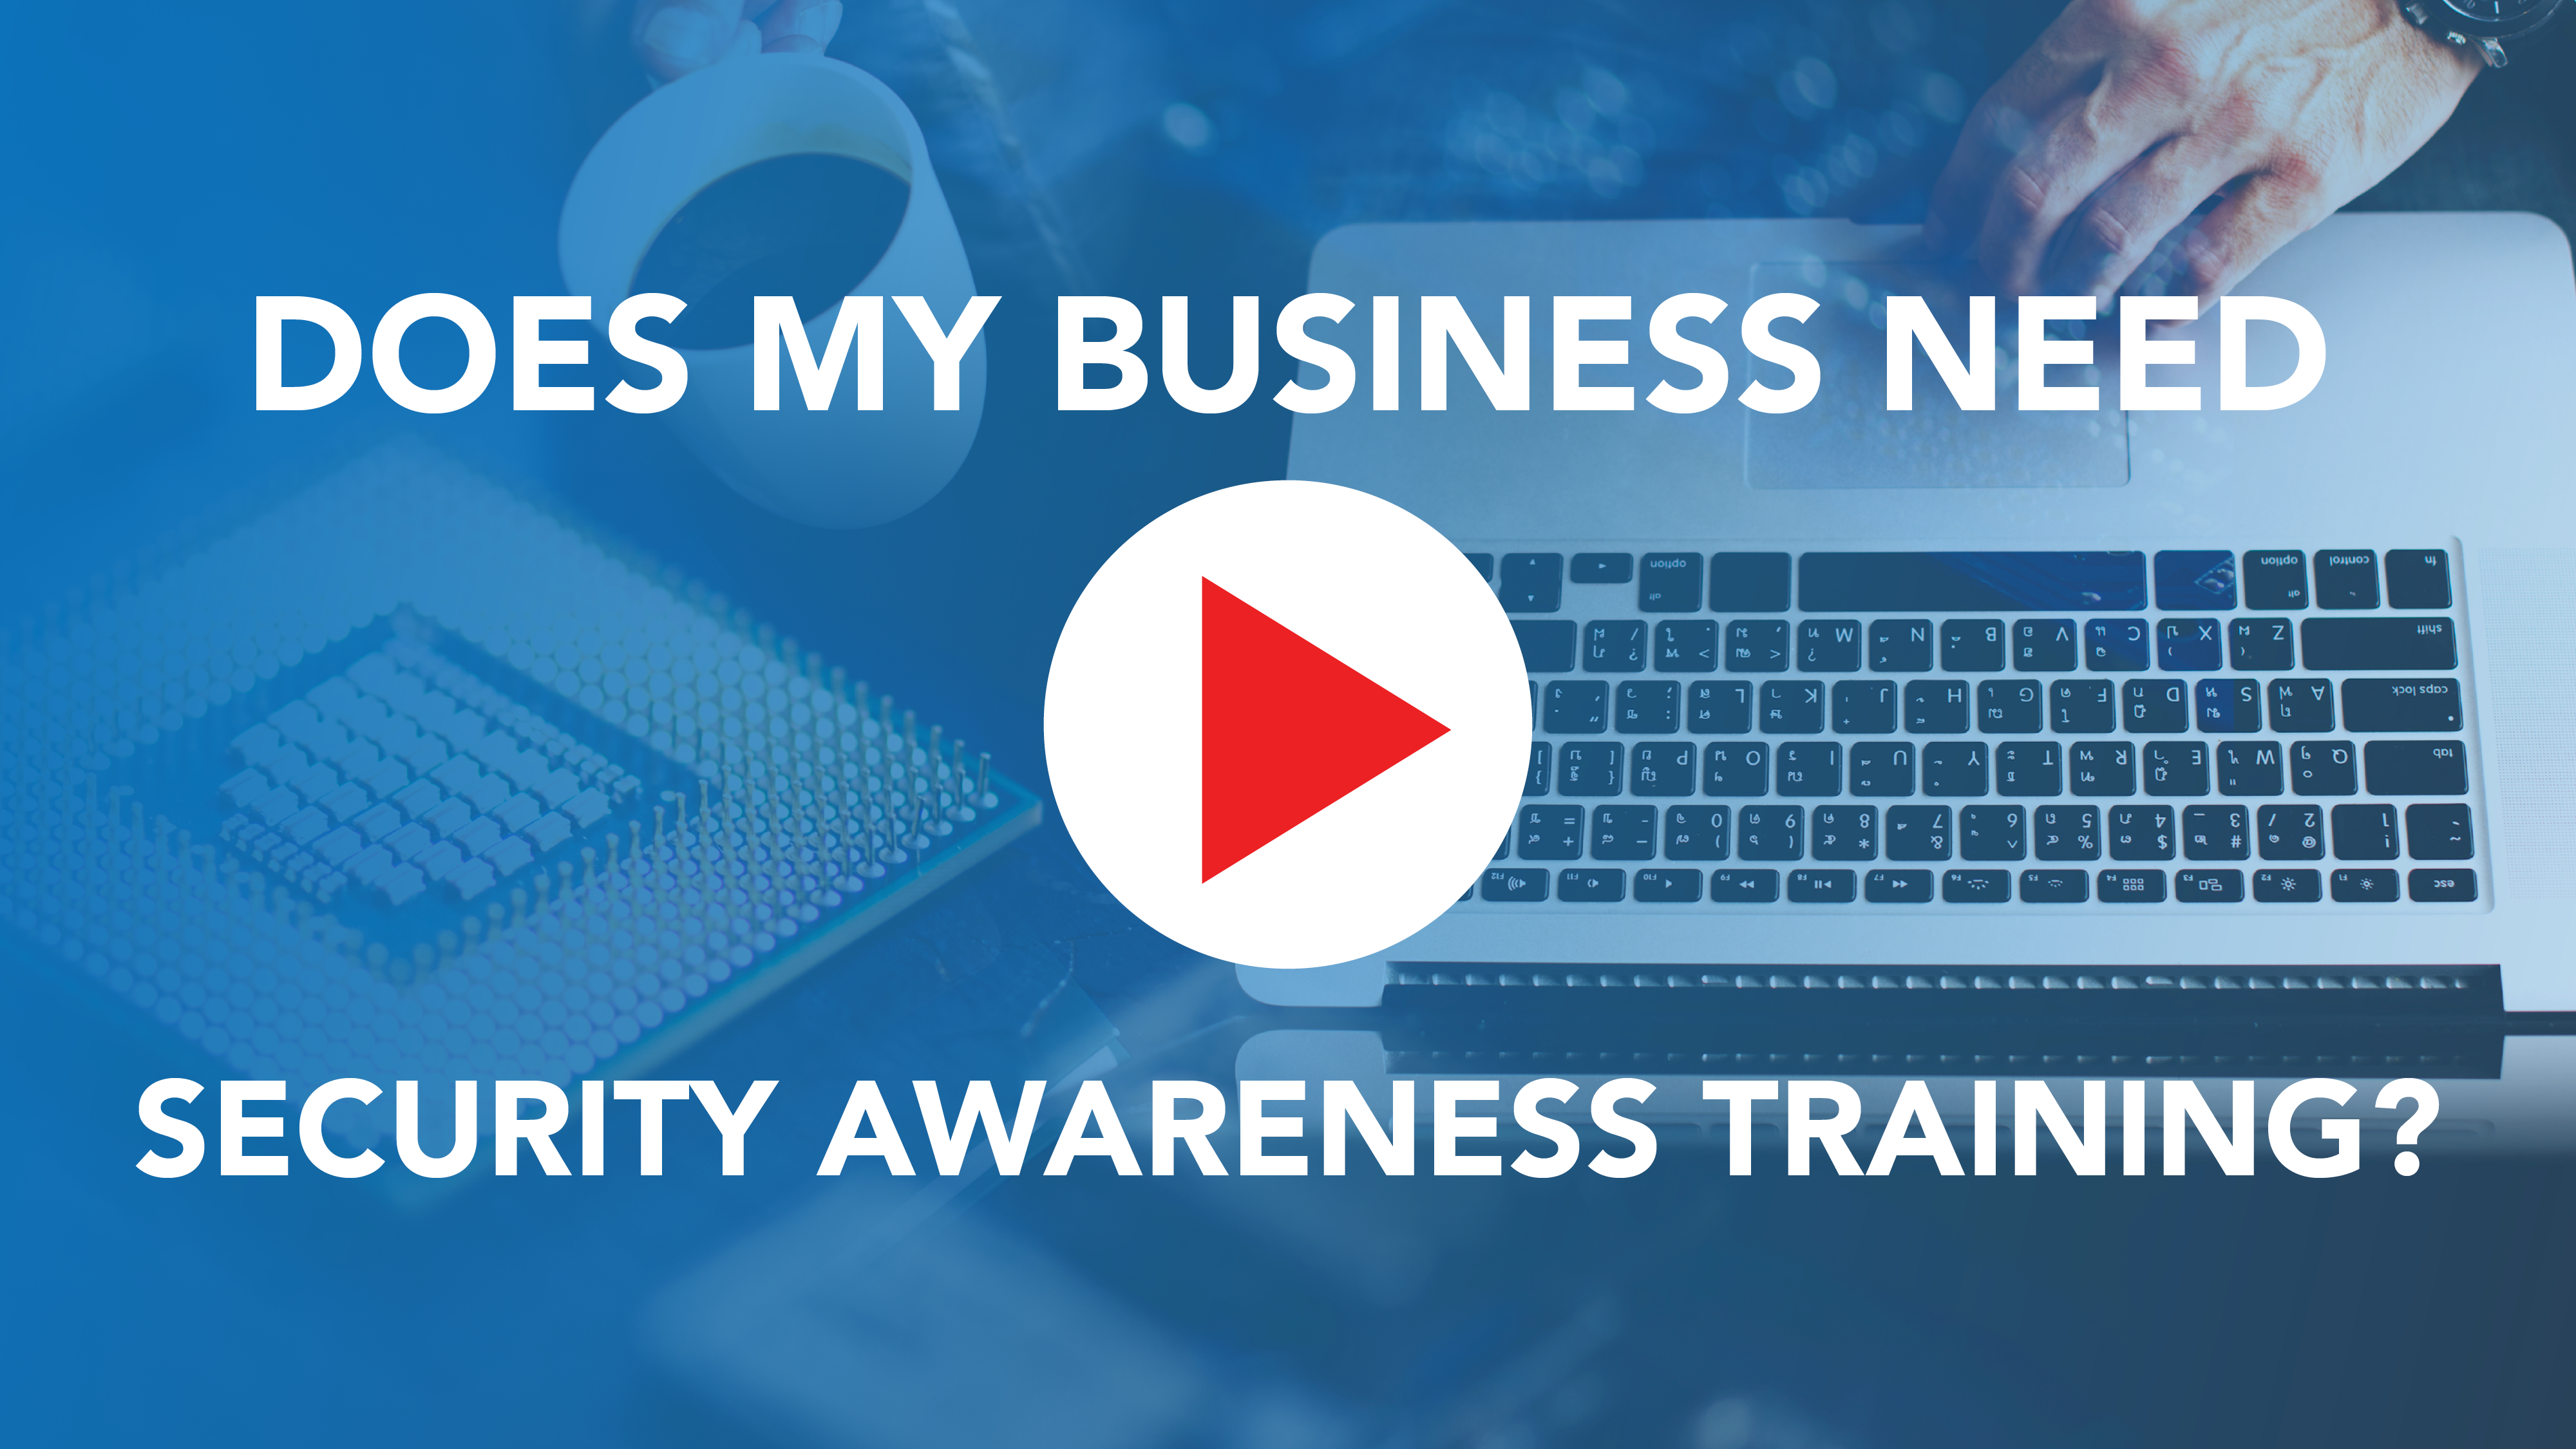 Does My Business Need Security Awareness Training